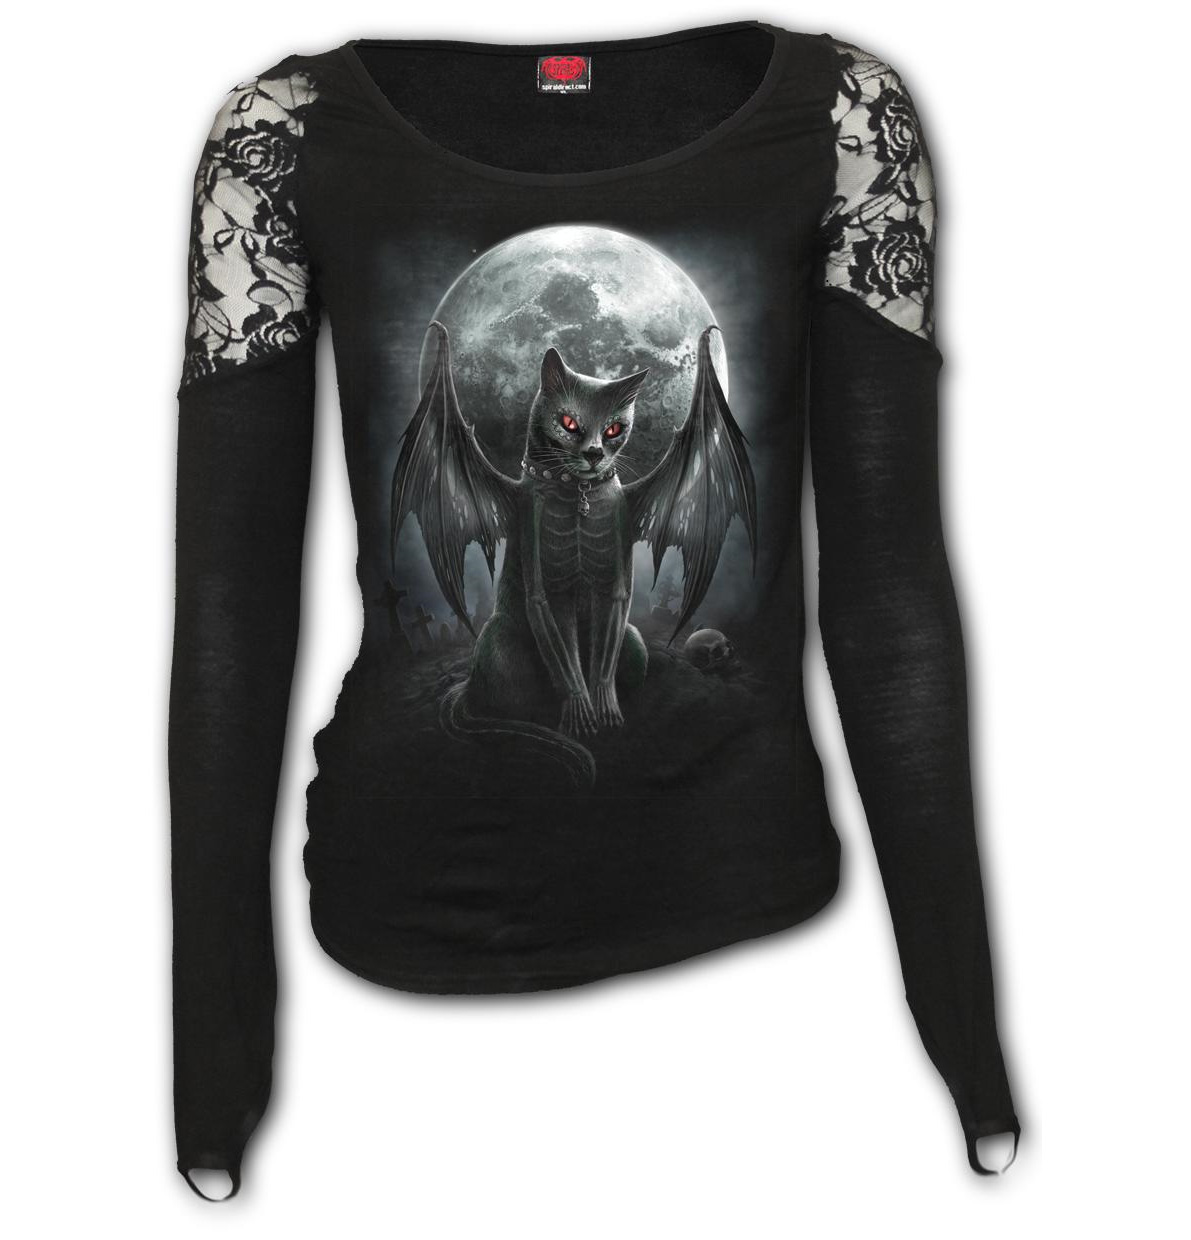 Spiral-Direct-Ladies-Gothic-Black-Top-Vampire-VAMP-CAT-L-Sleeve-Lace-All-Sizes thumbnail 3